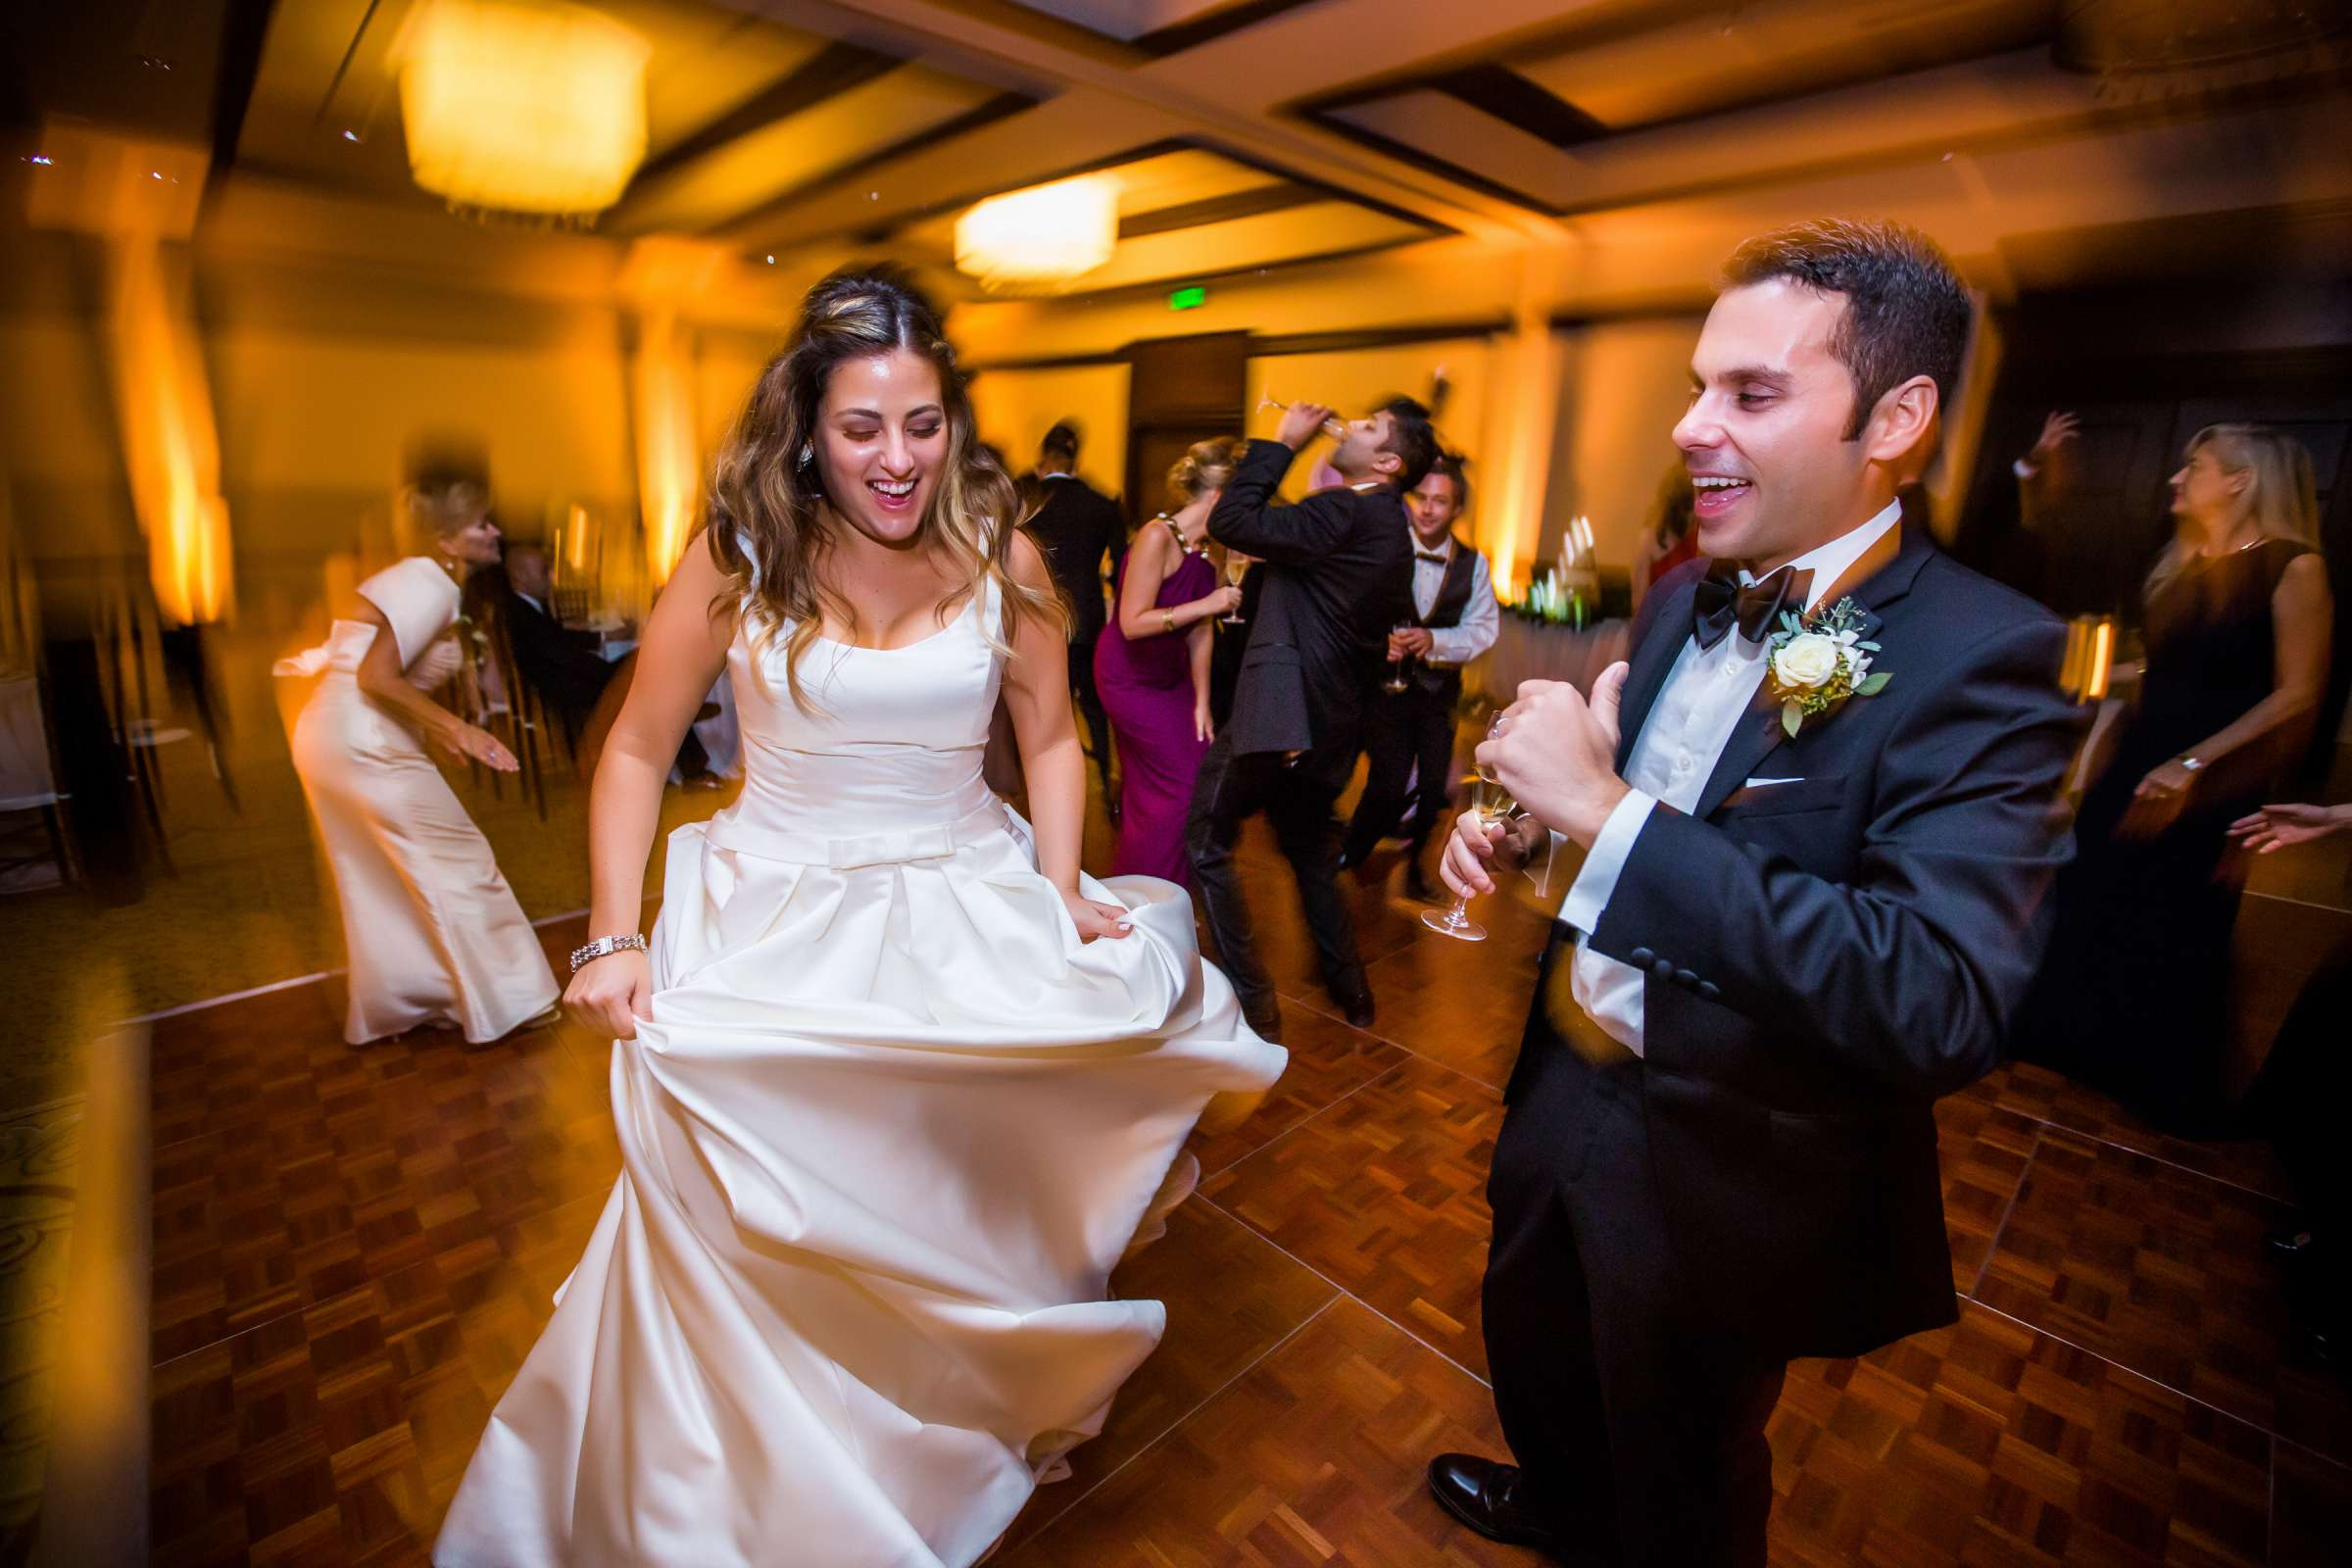 Rancho Bernardo Inn Wedding coordinated by Très Chic Events, Stefania and Nicholas Wedding Photo #81 by True Photography